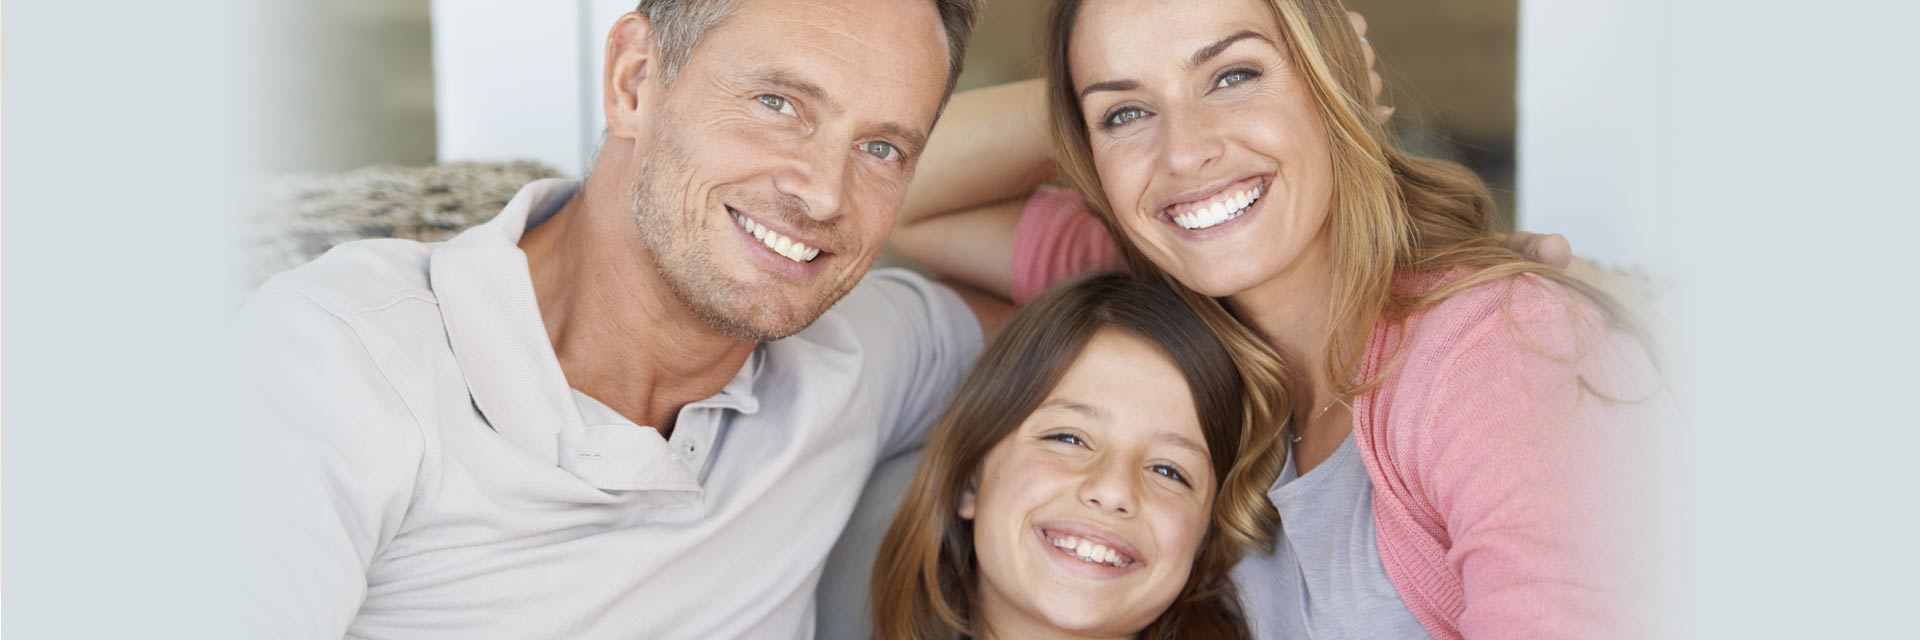 Paradise Valley Family Dentist